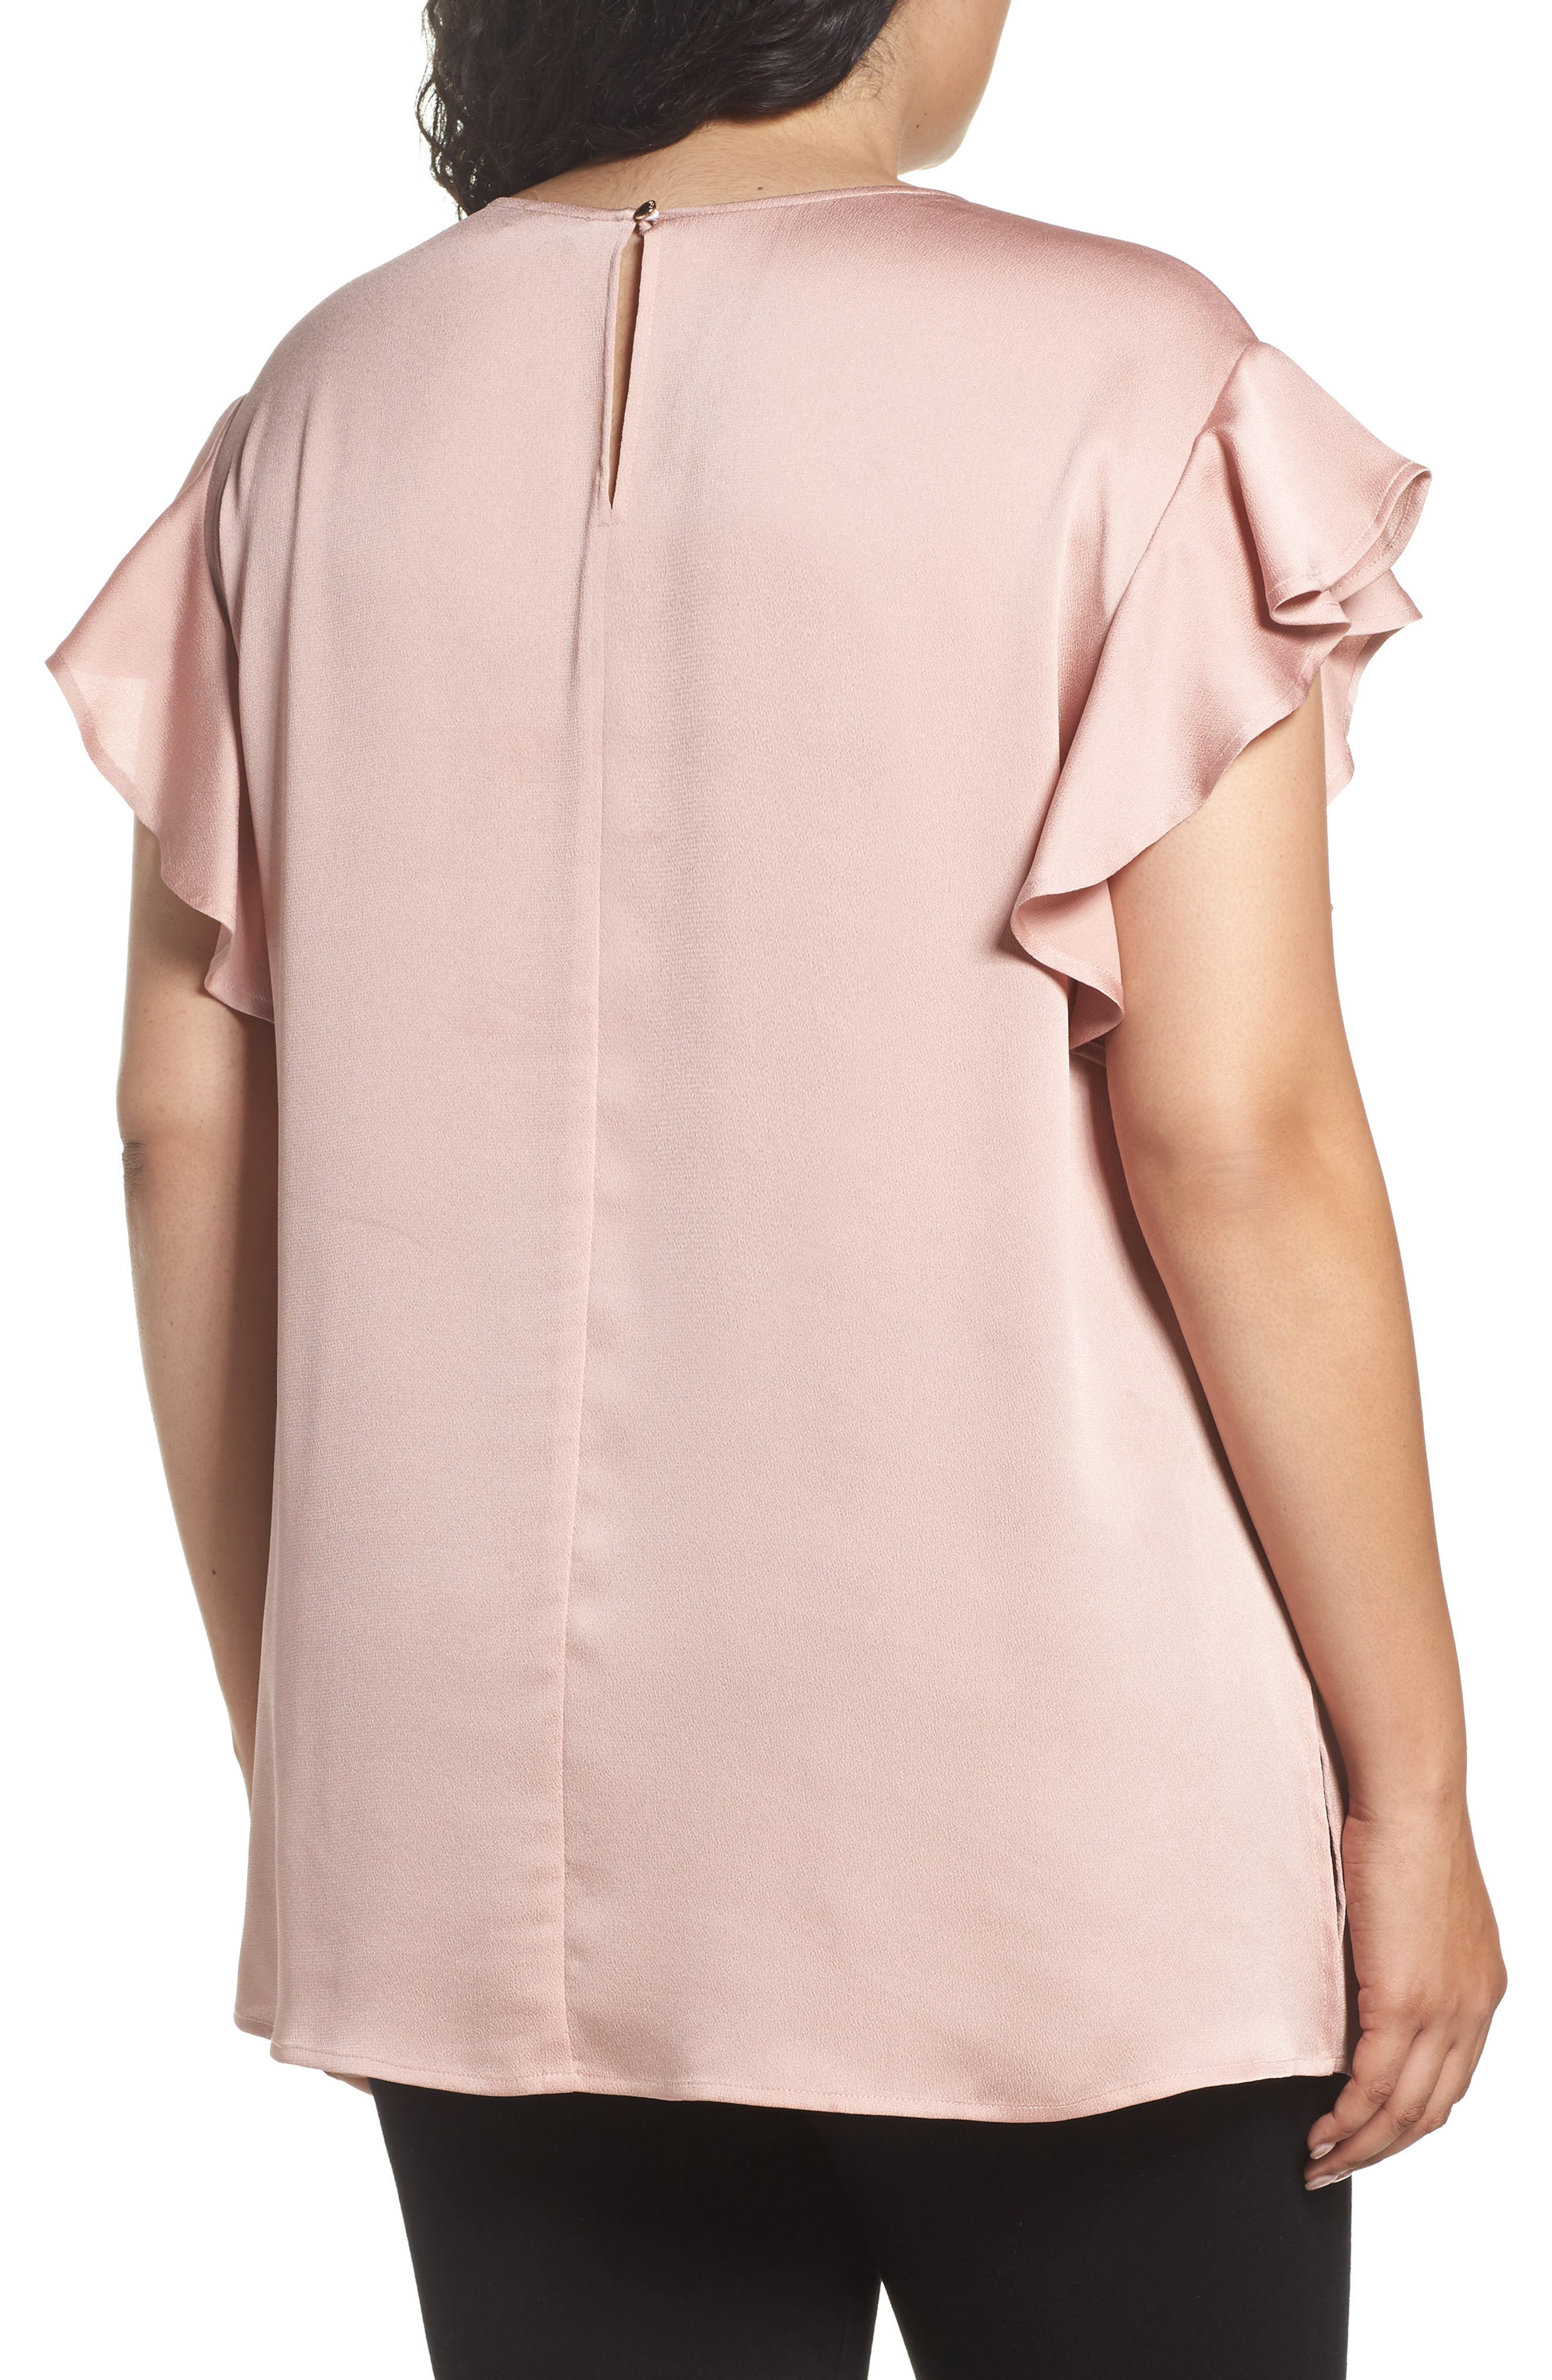 Ruffle Sleeve Blouse,                             Alternate thumbnail 2, color,                             607Iced Rose